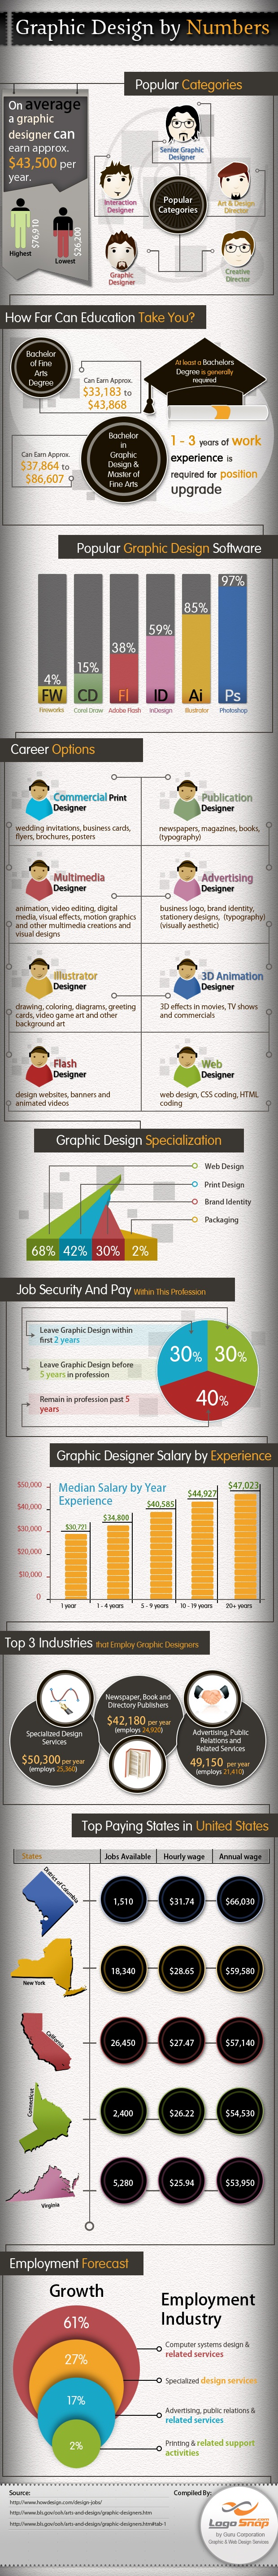 Graphic Design Careers By Numbers